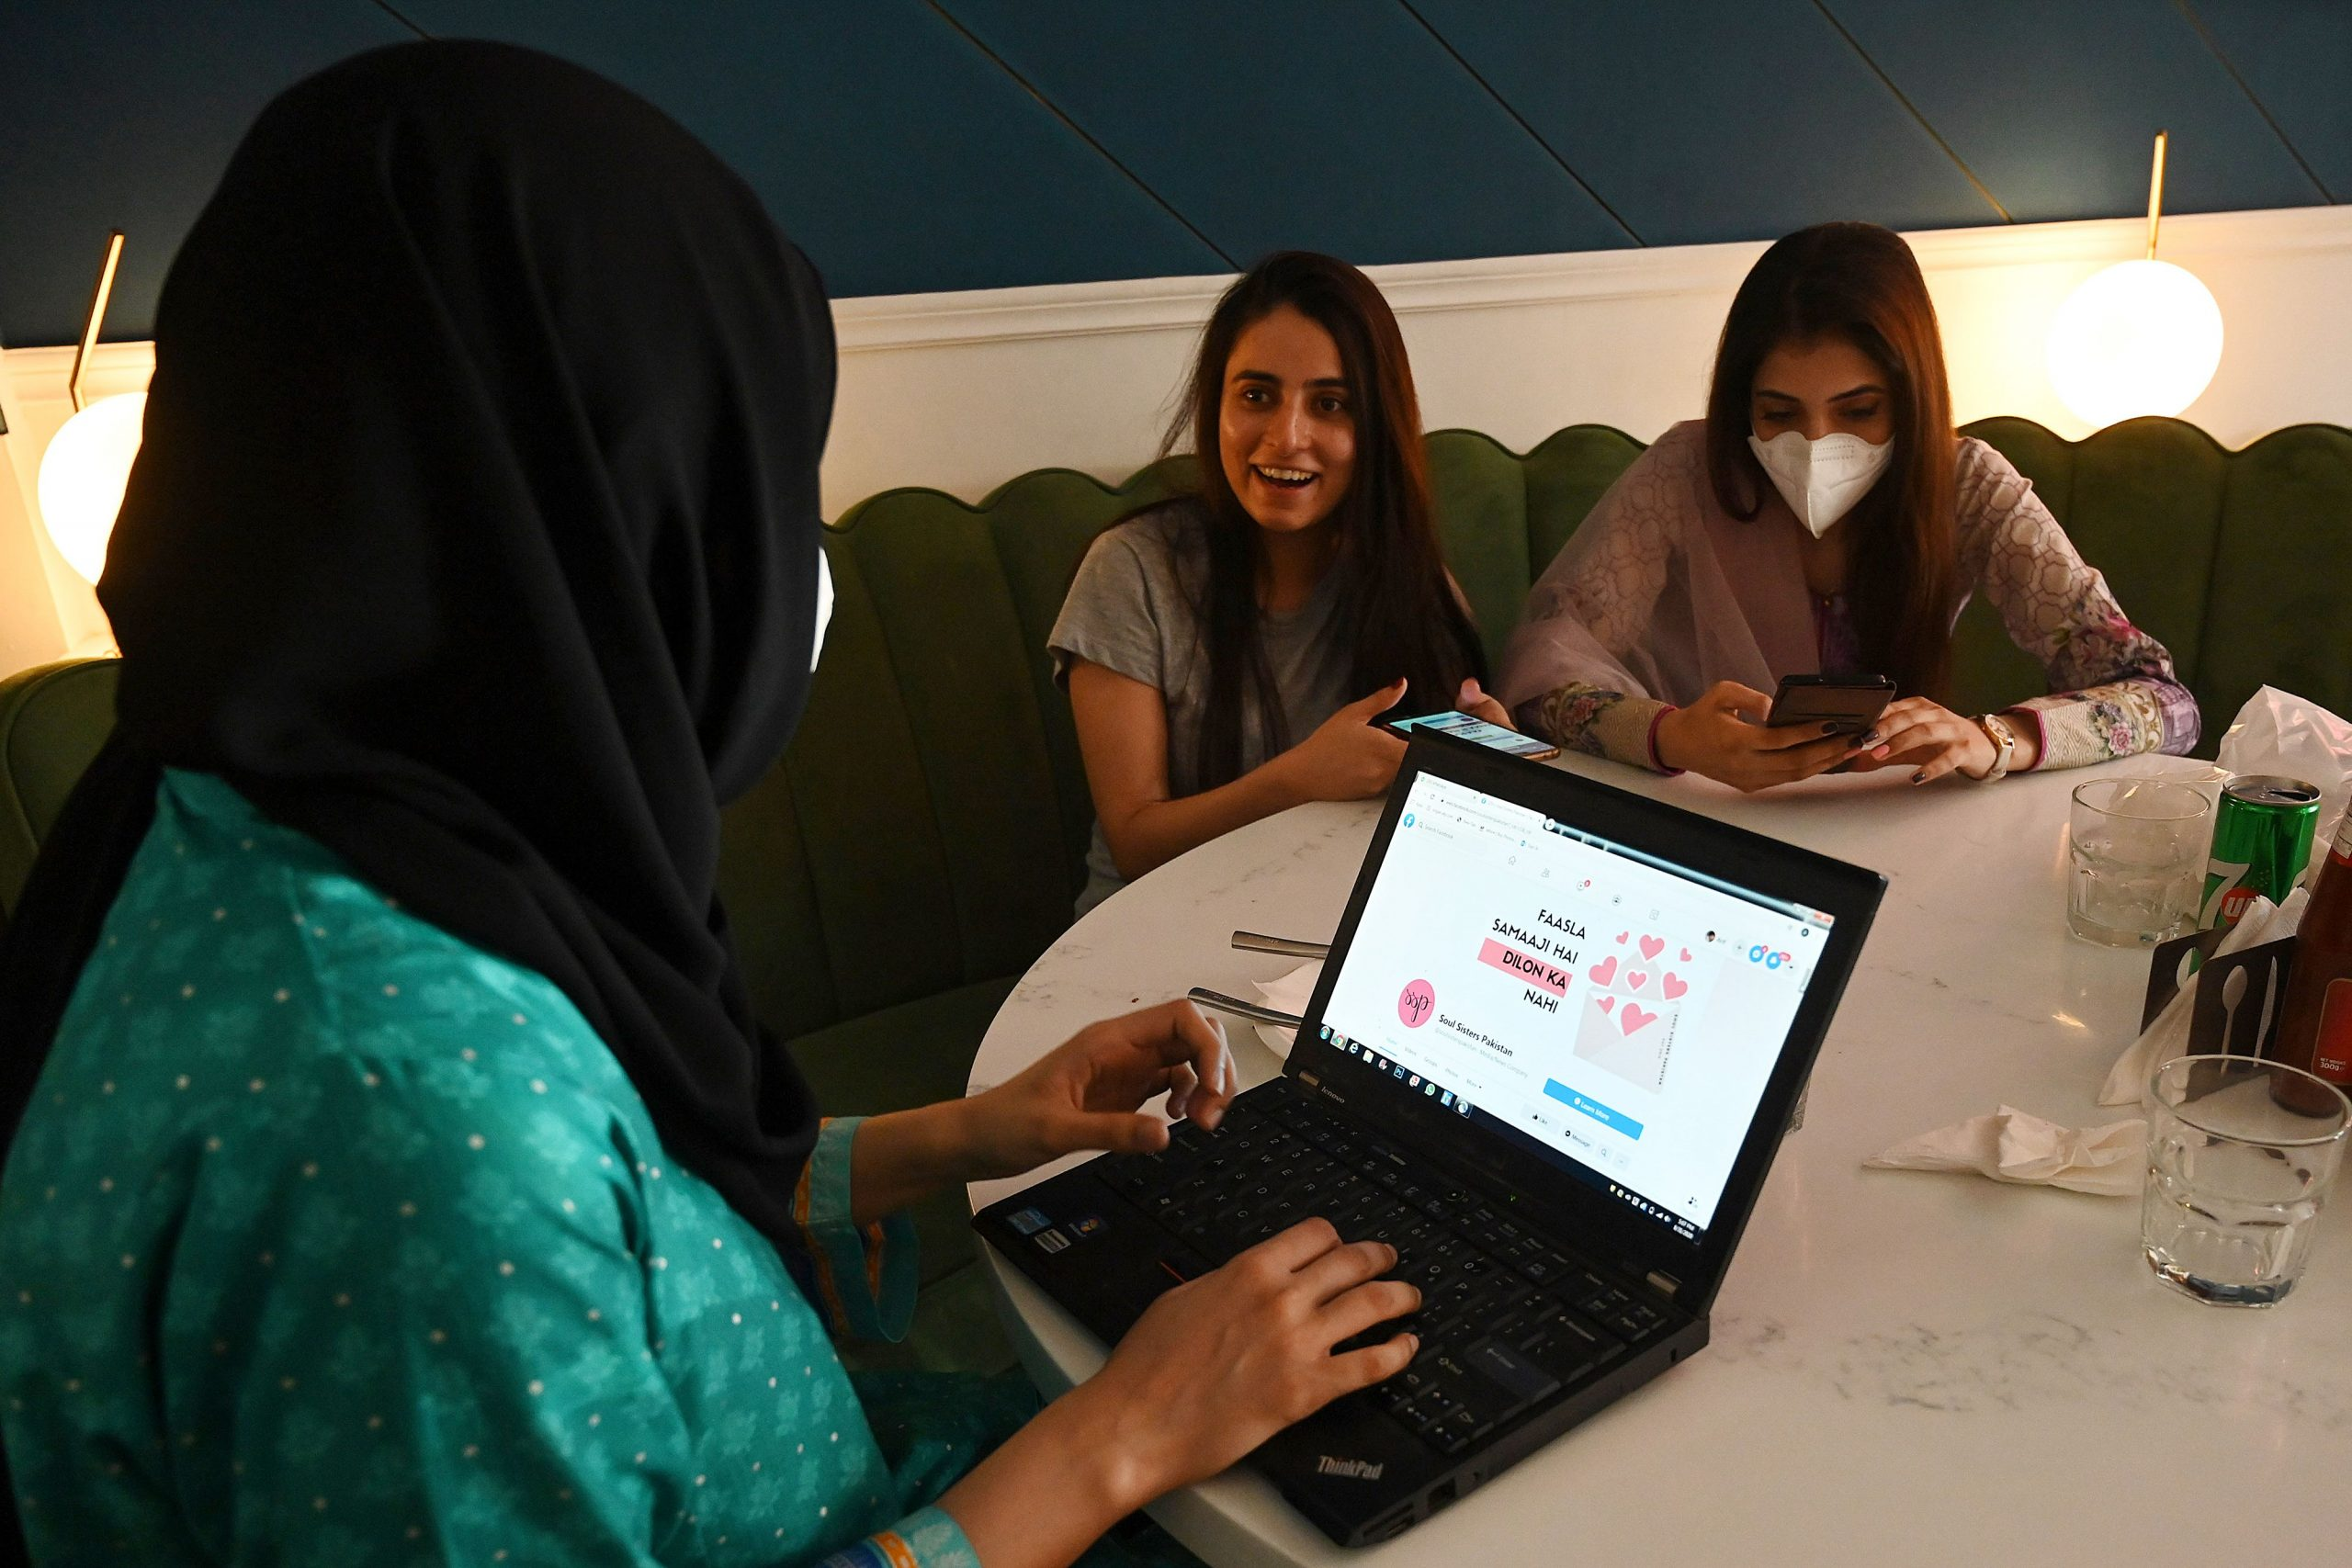 Women discuss as they check out the social online group 'The Soul Sisters Pakistan' on their Facebook page, in Lahore. (Photo by ARIF ALI/AFP via Getty Images)